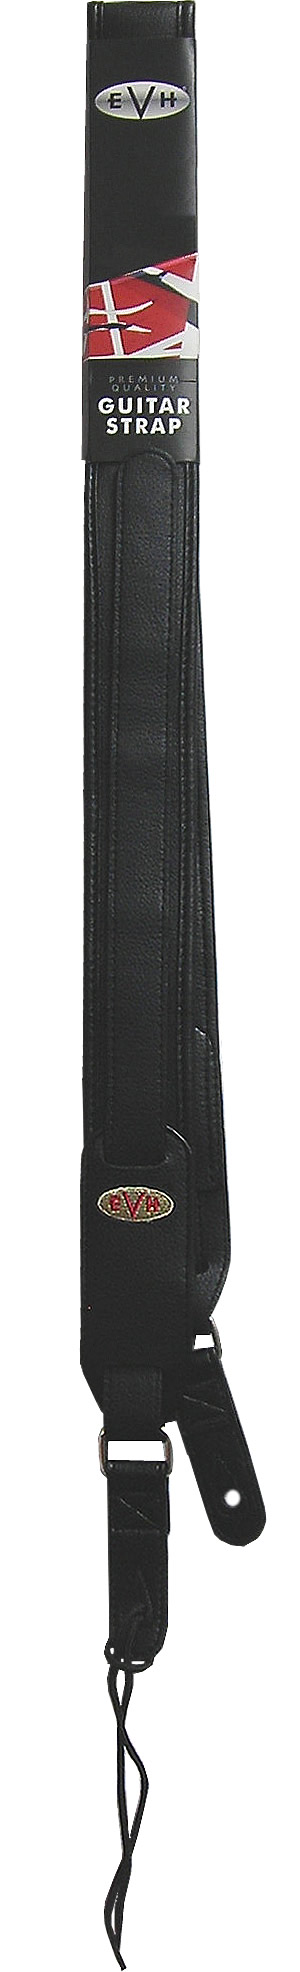 Premium Leather Signature Guitar Strap